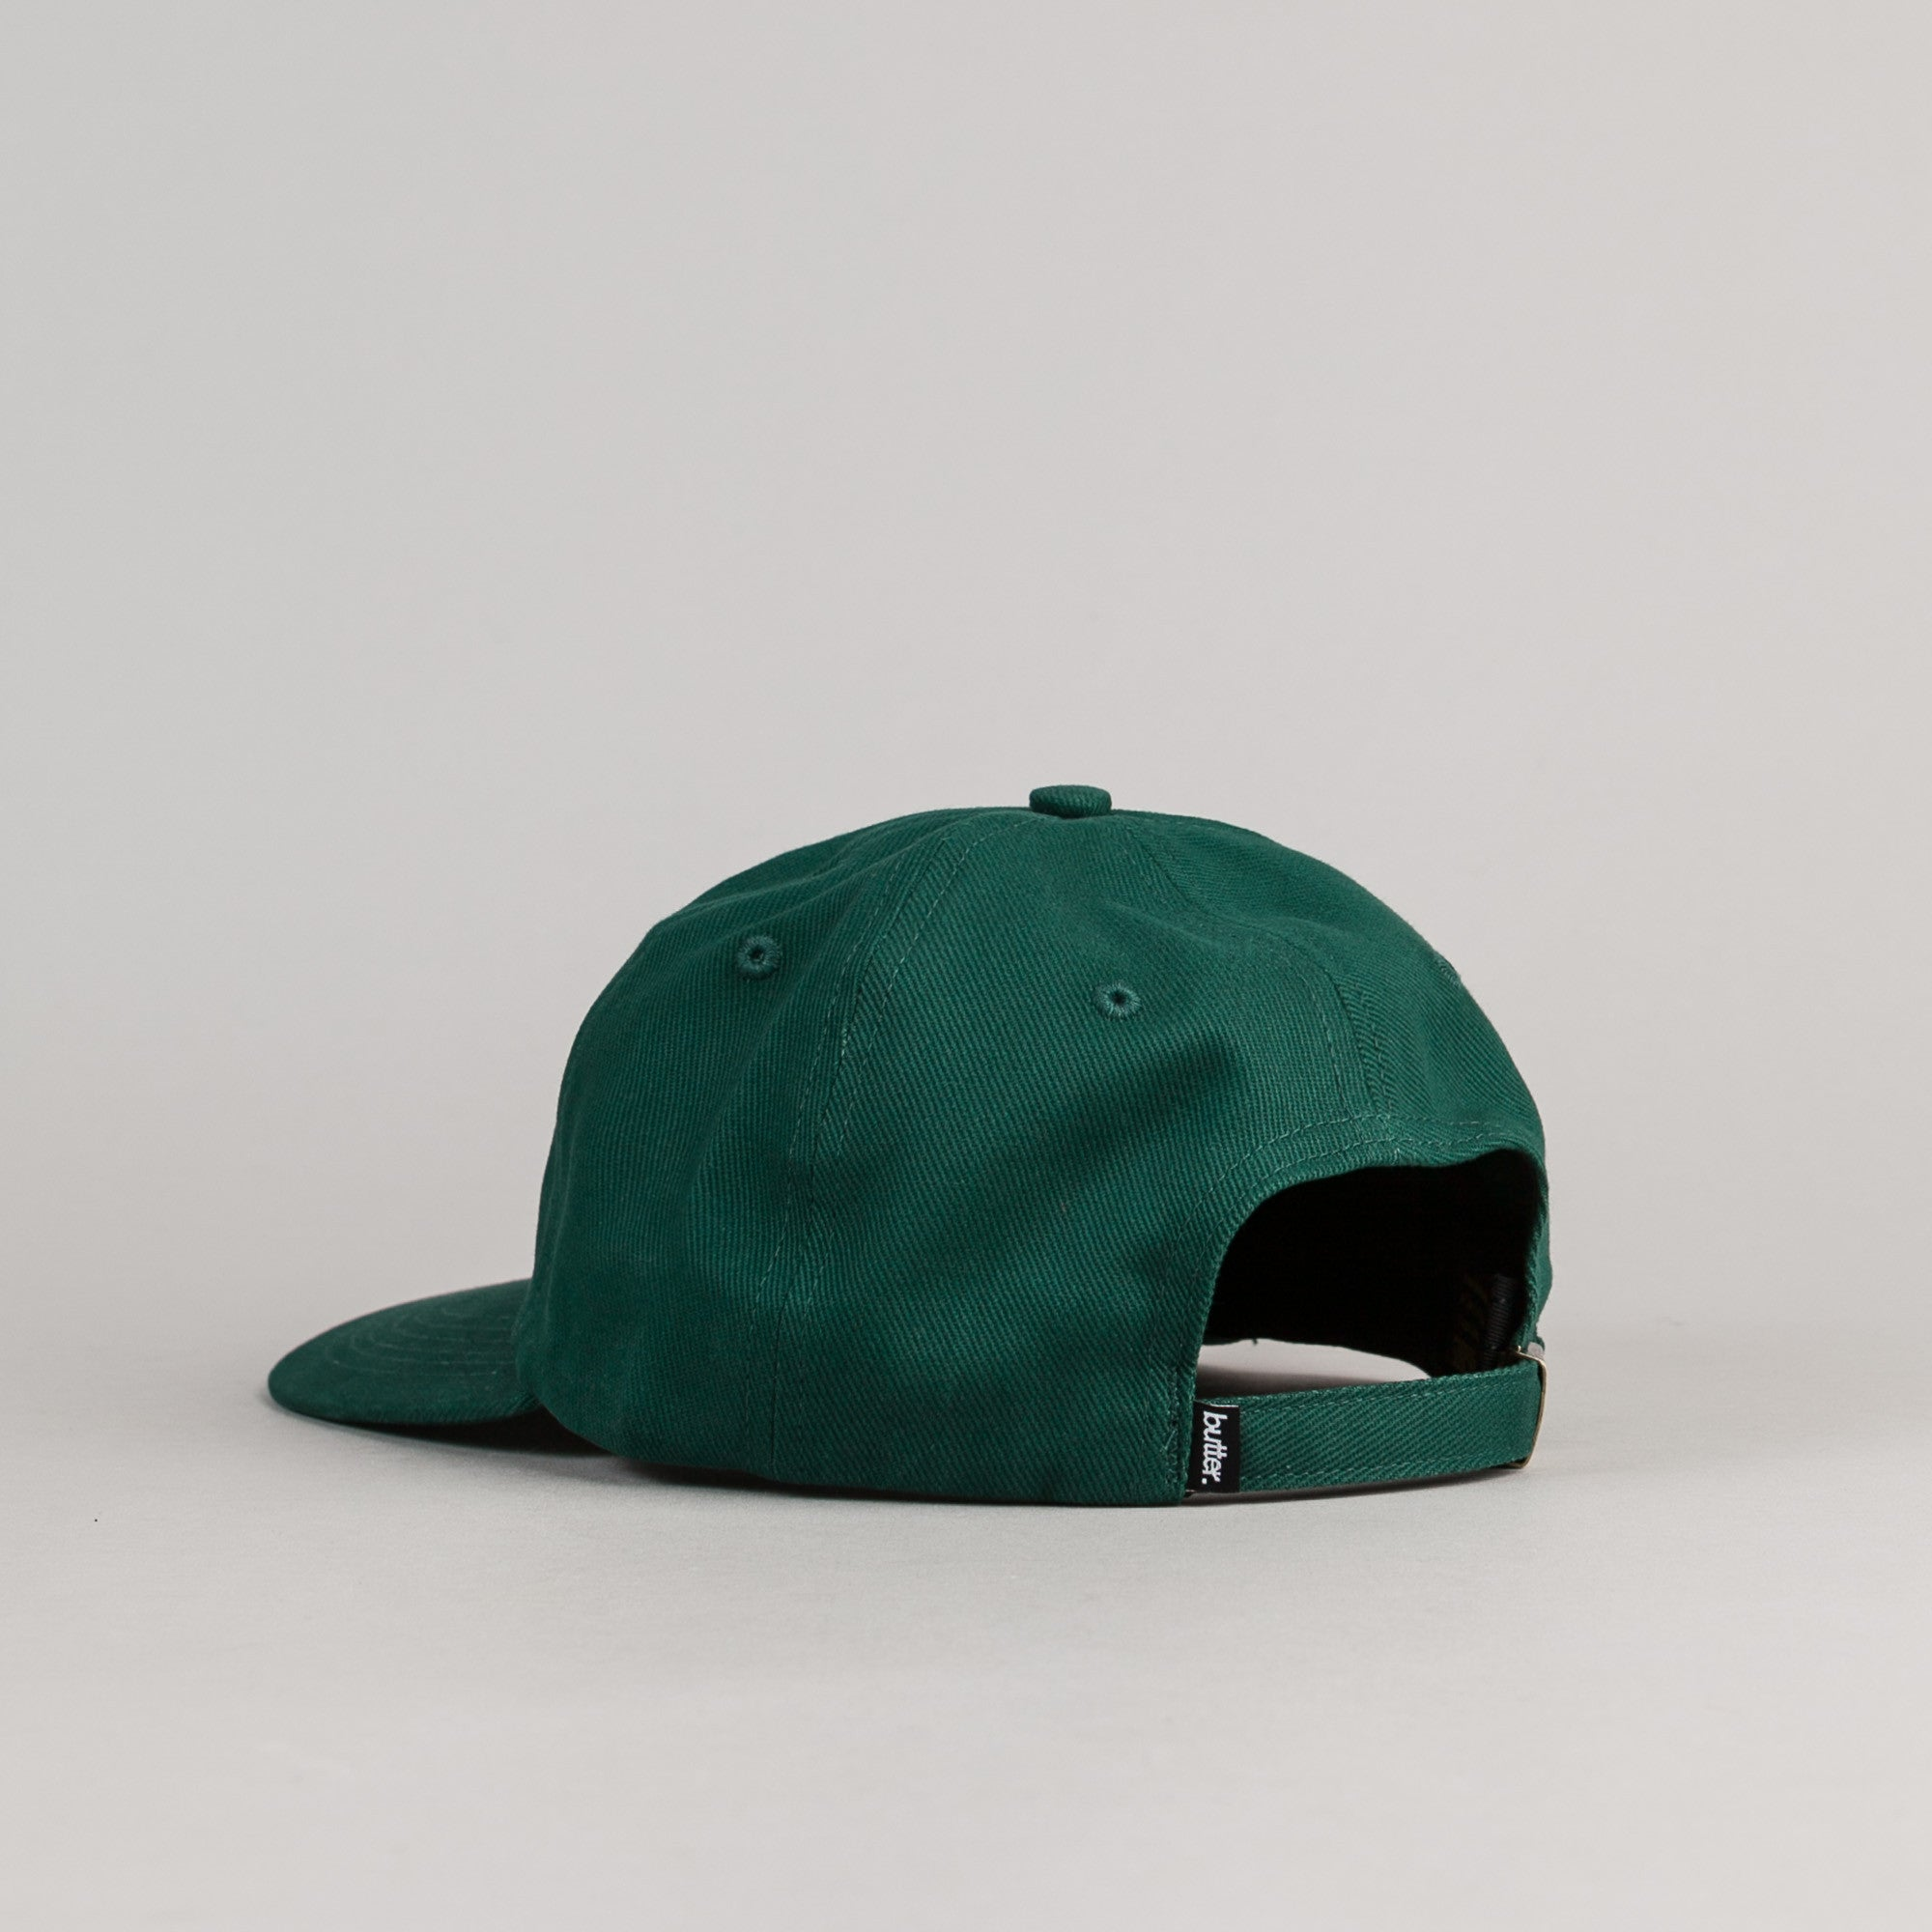 Butter Goods Judah 6 Panel Cap - Green